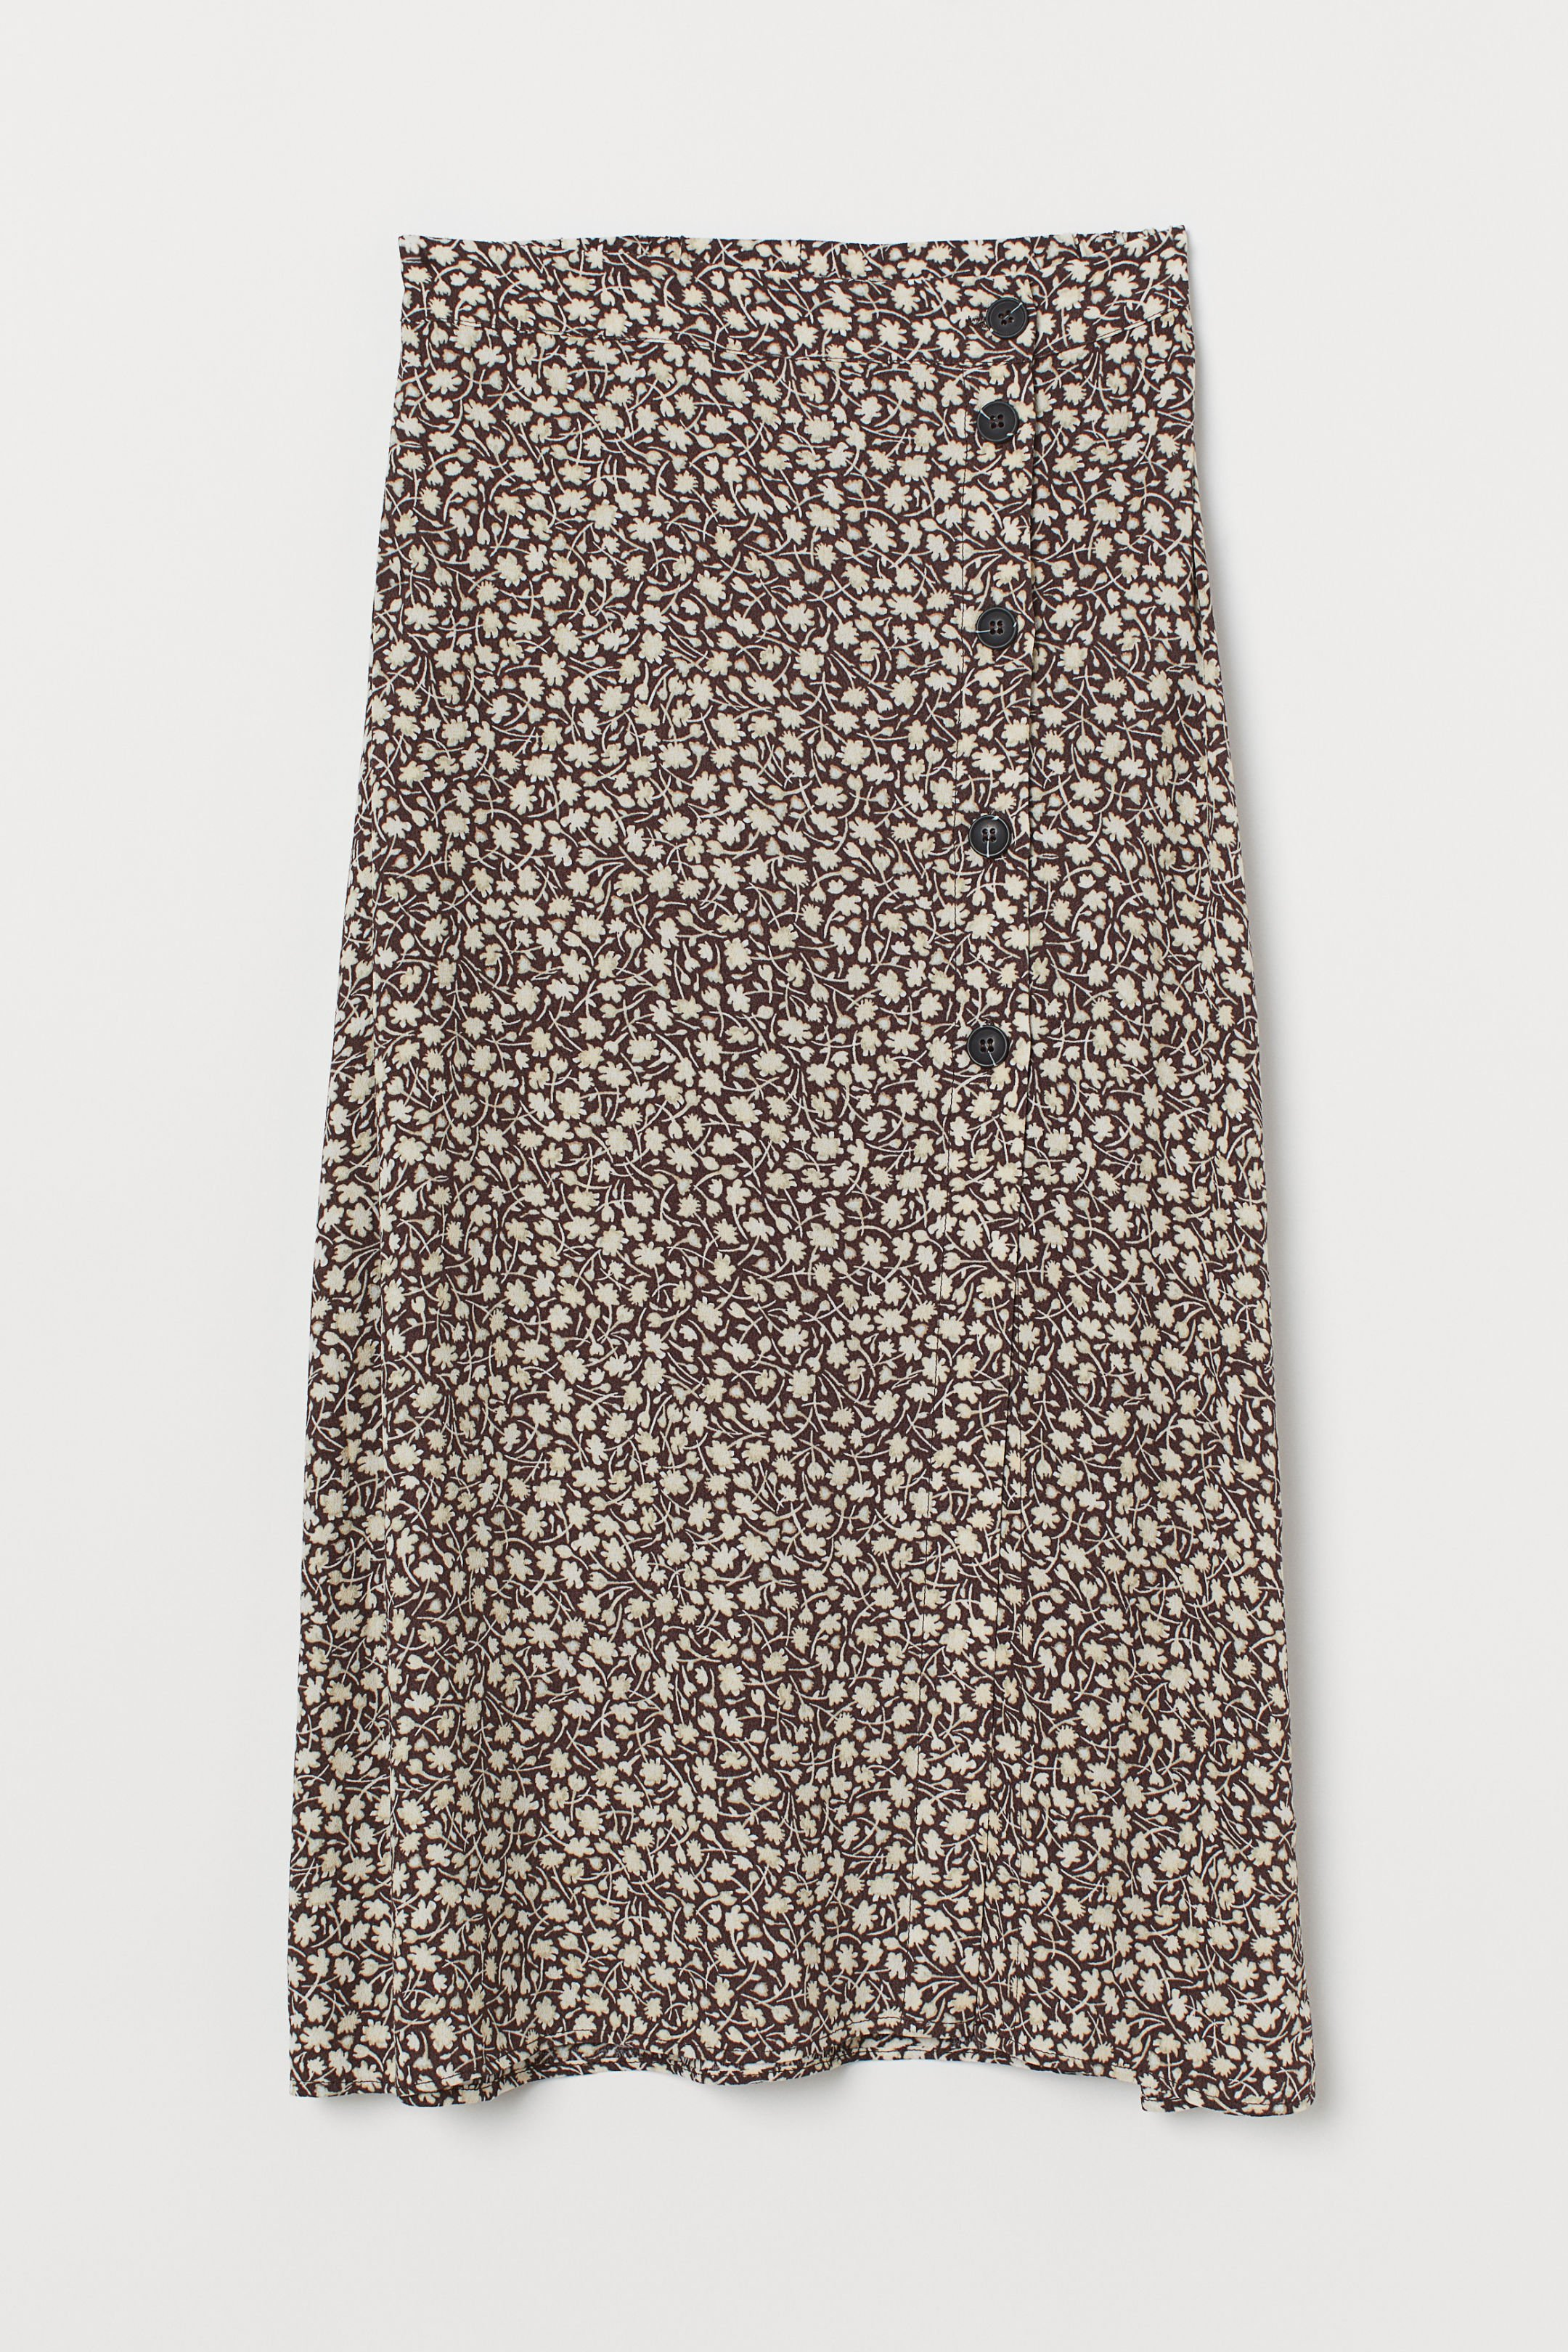 Calf-length Skirt - Brown/white floral - Ladies | H&M US